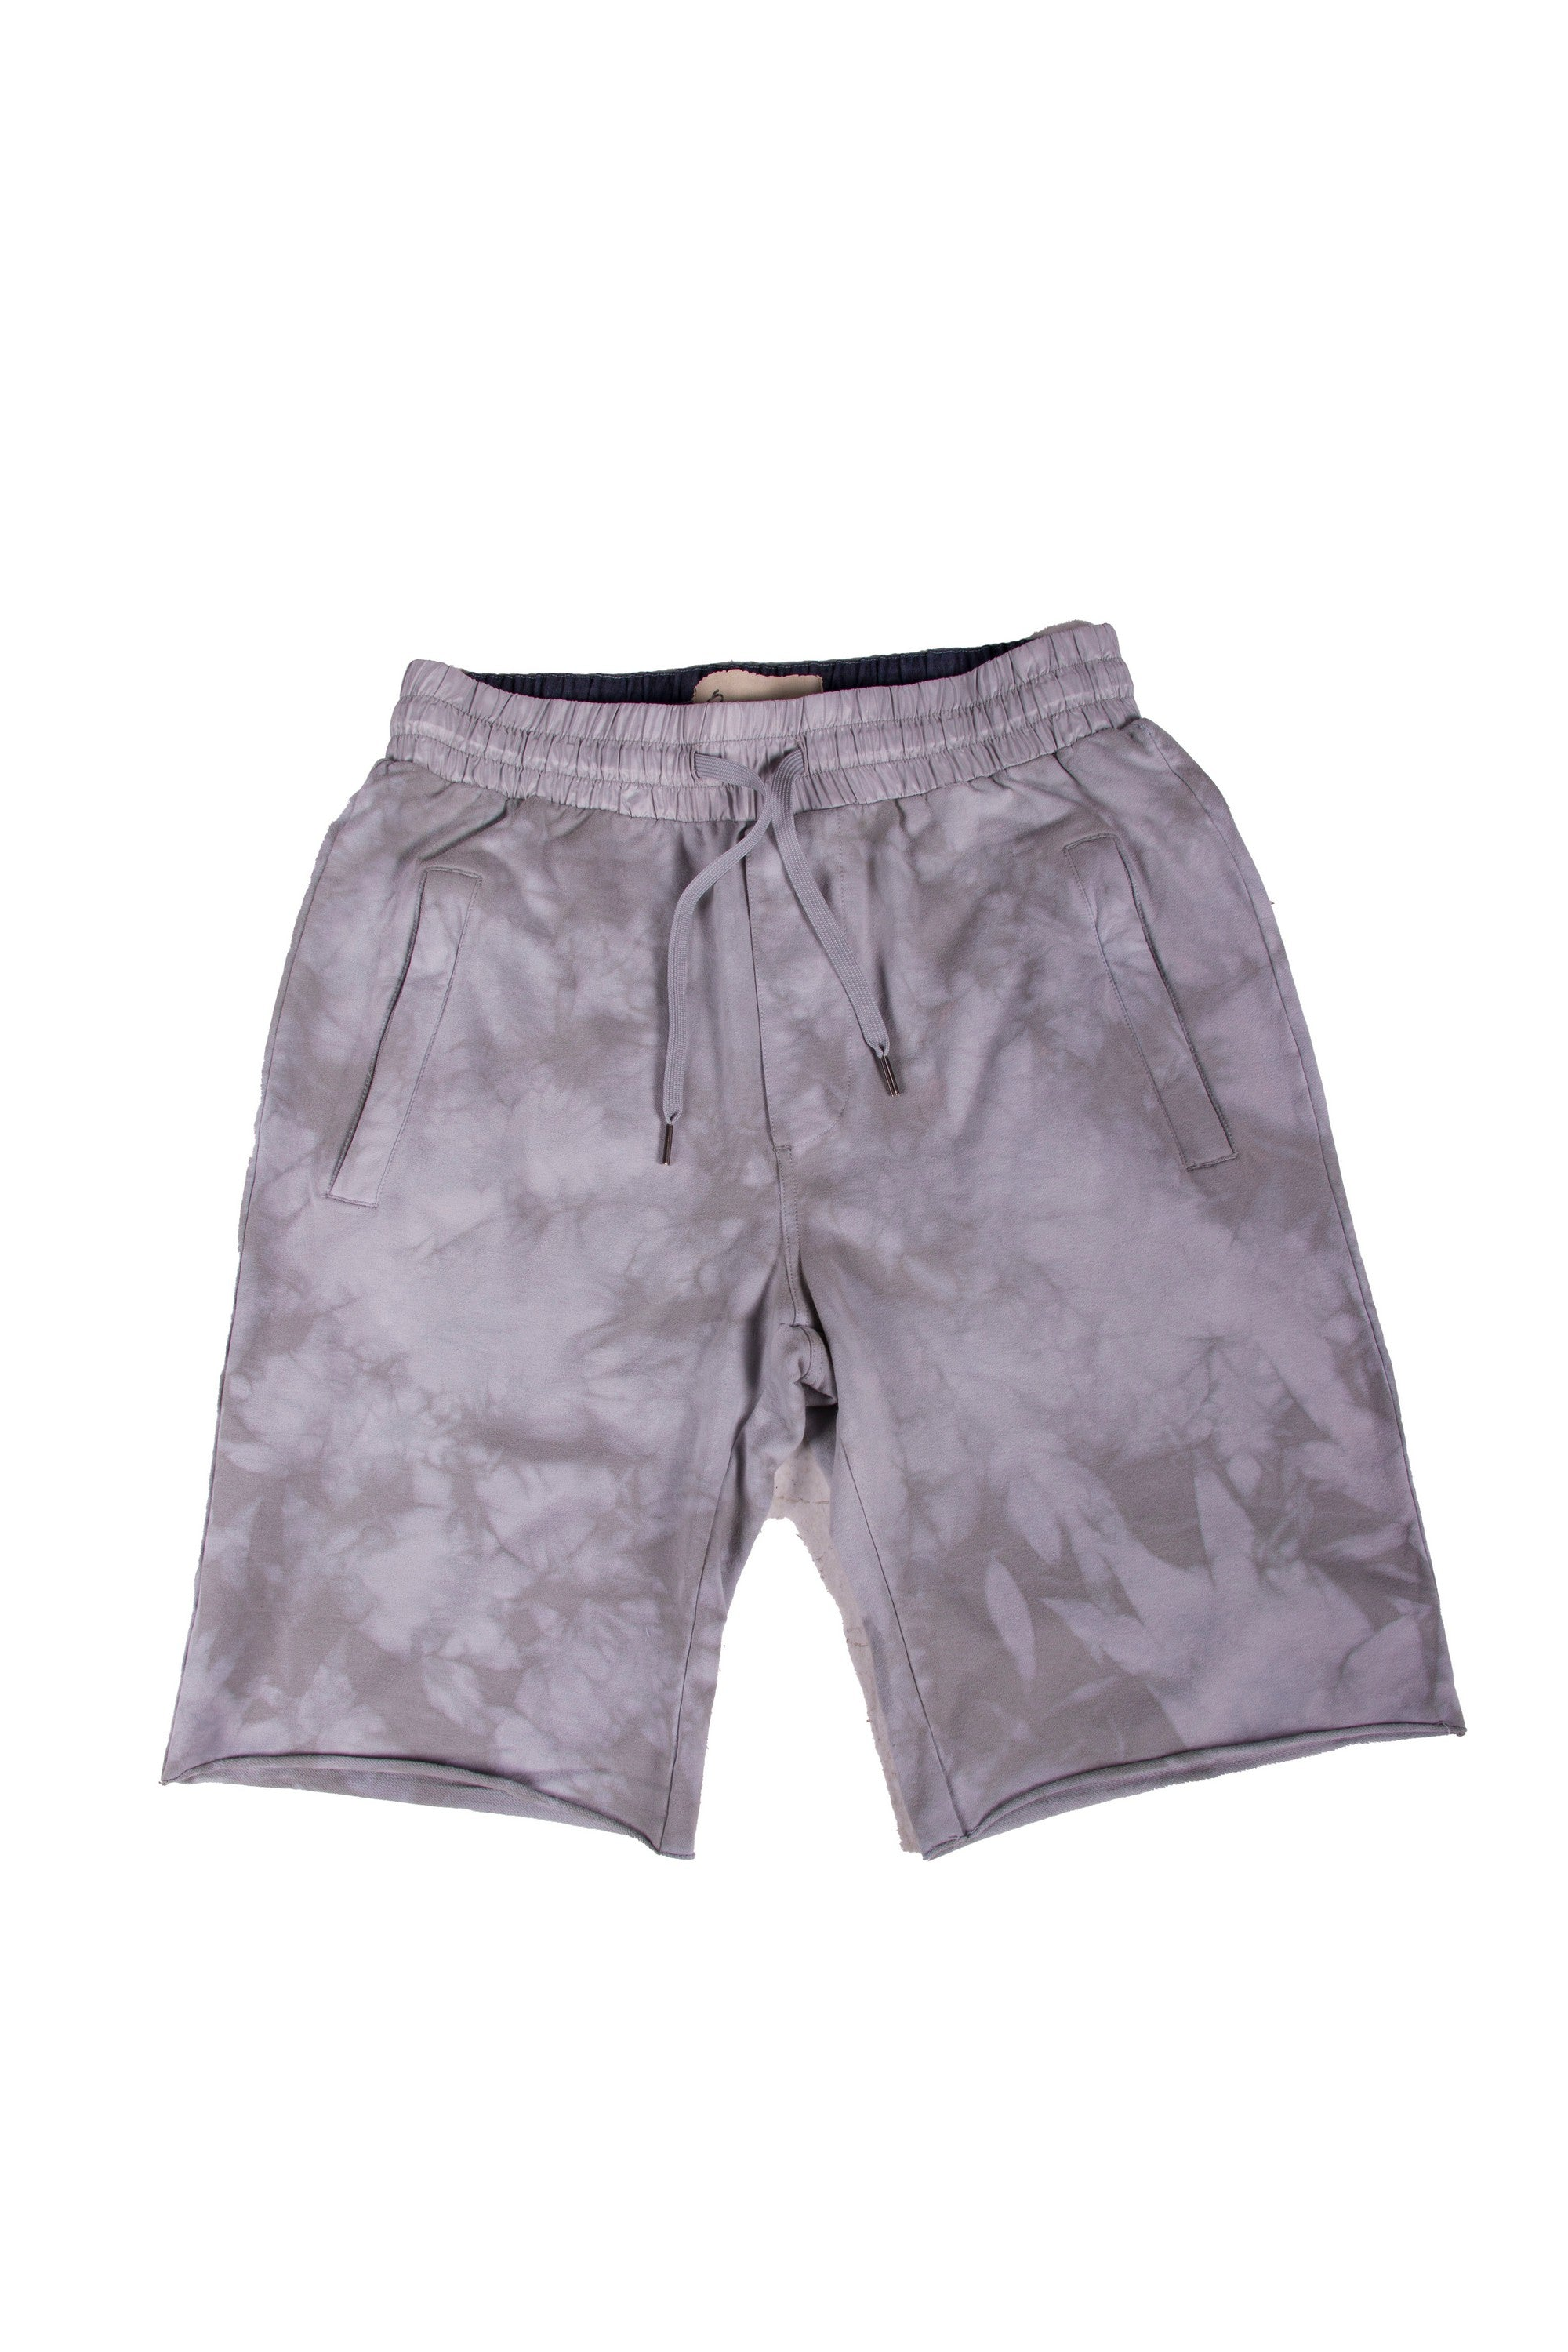 Re*pair Knit Jogger Shorts